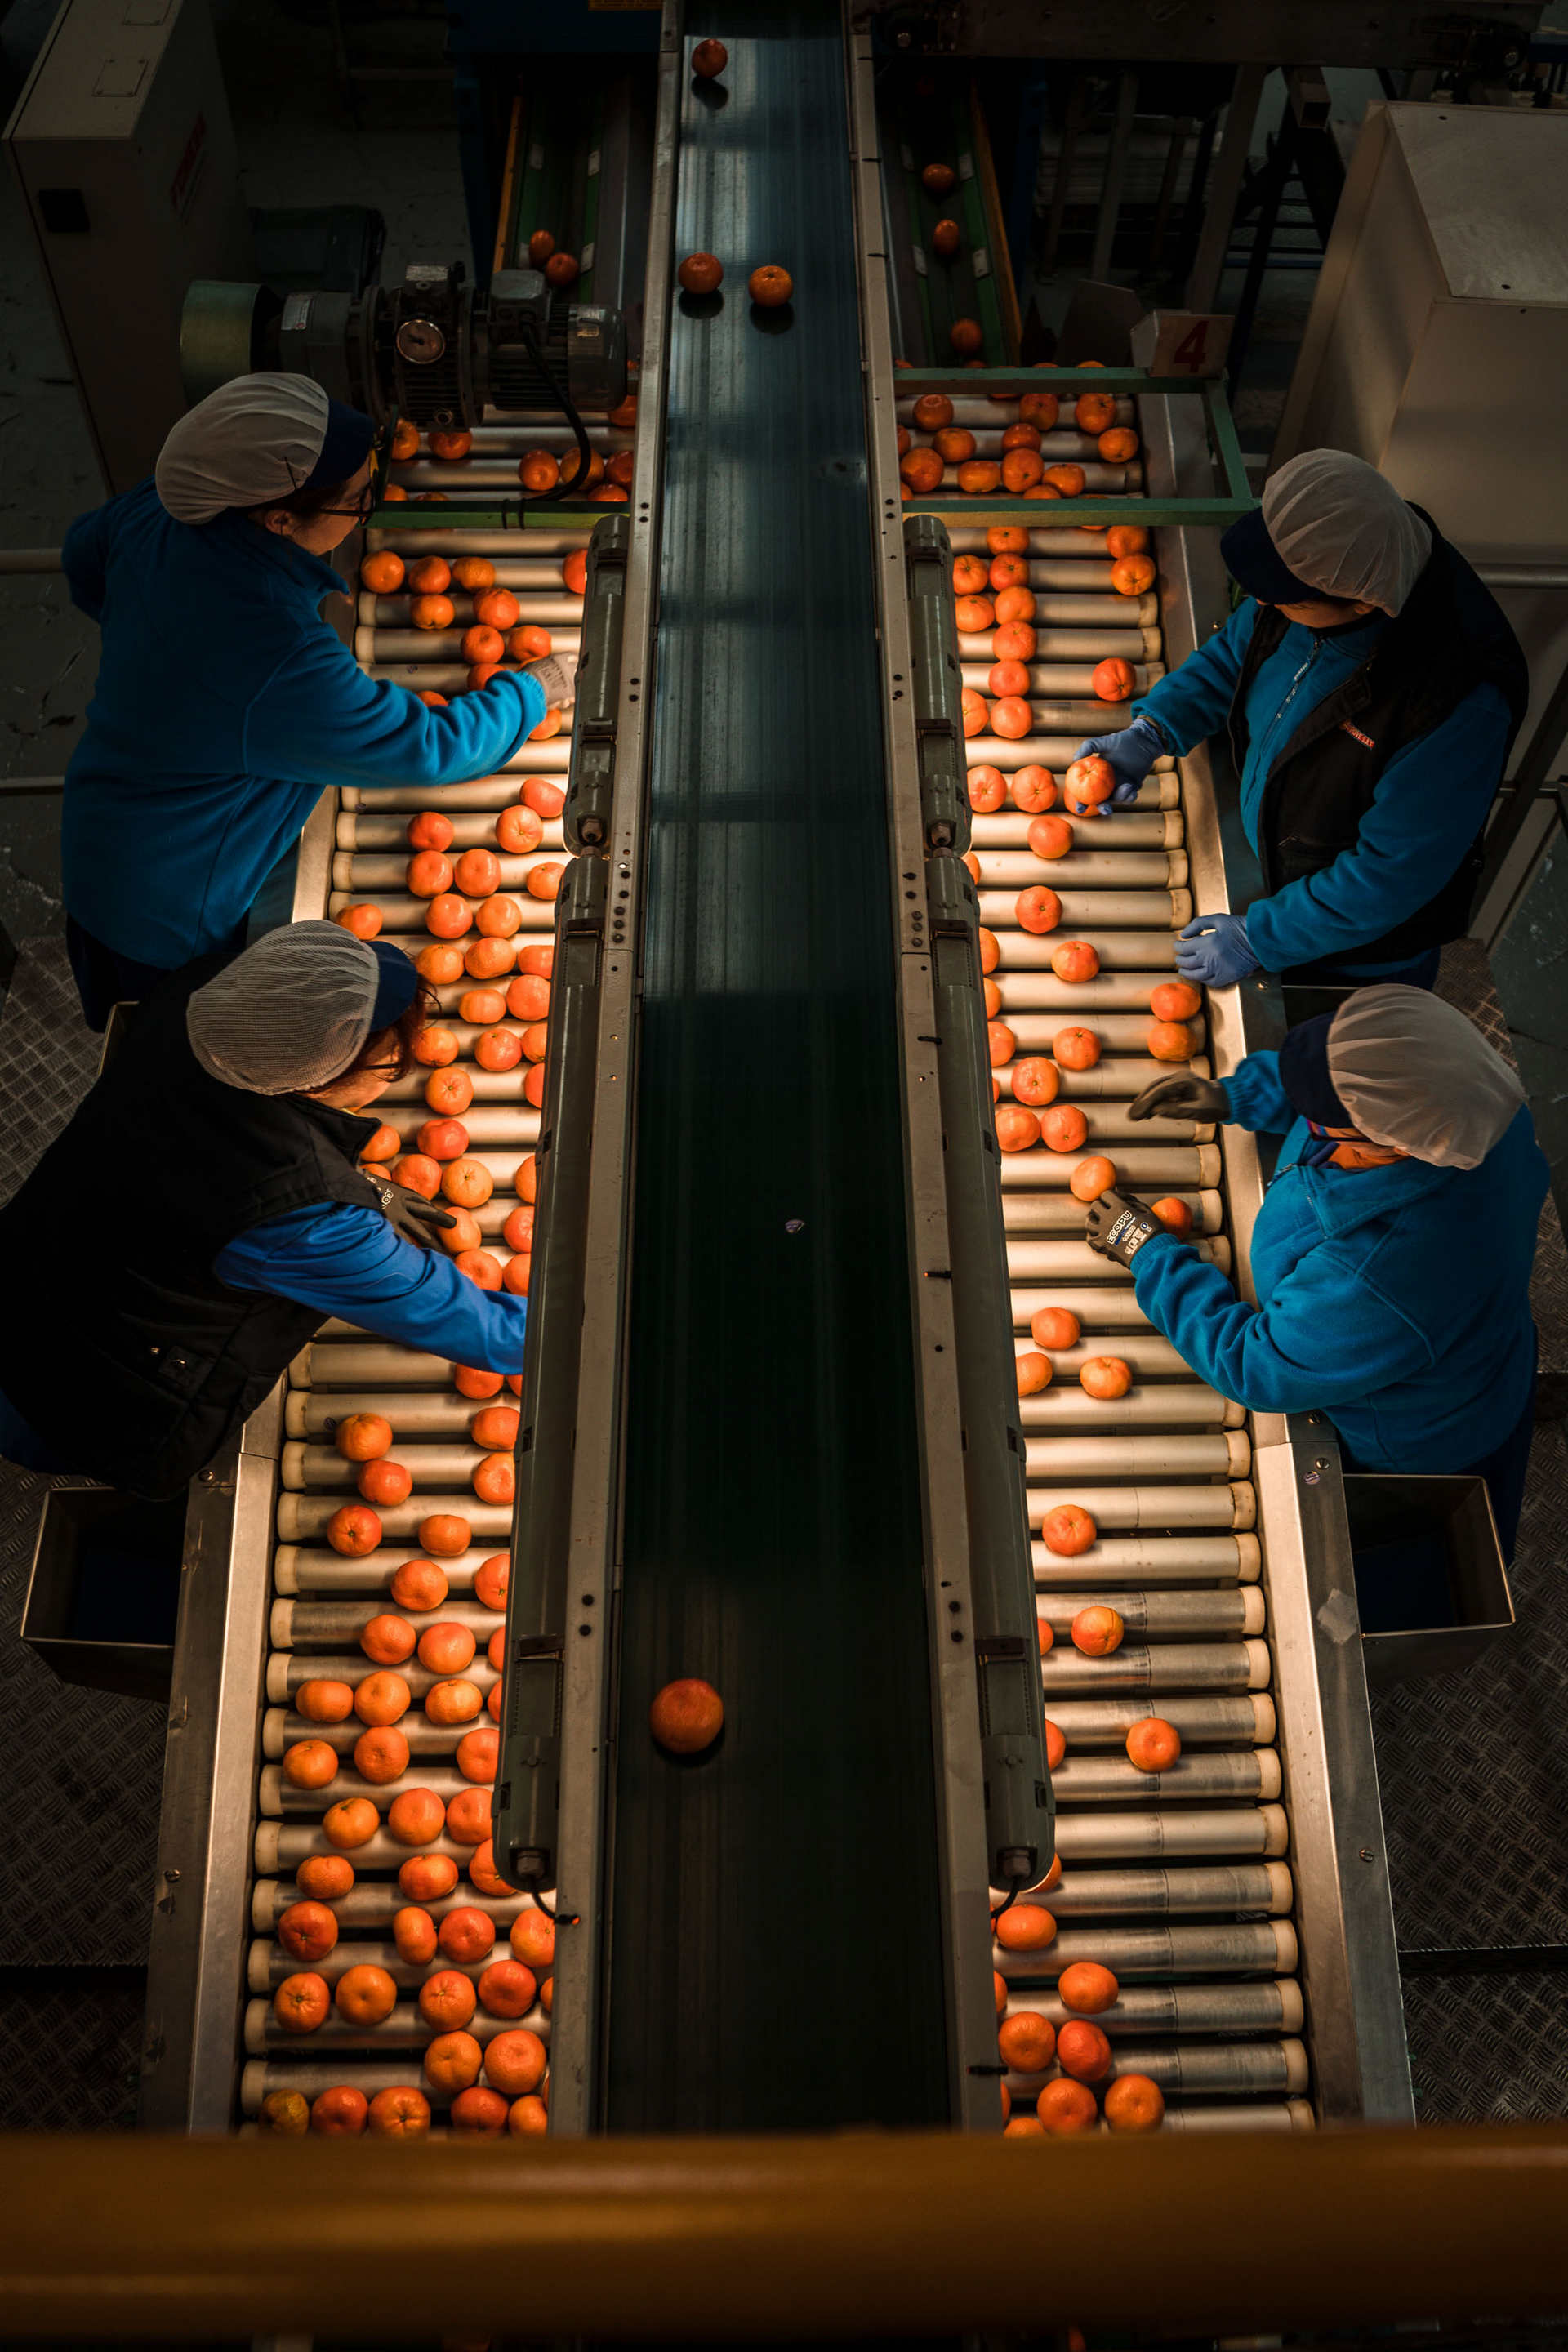 Sergi Villanueva: Four women select the oranges that are going to be exported to all of Europe.